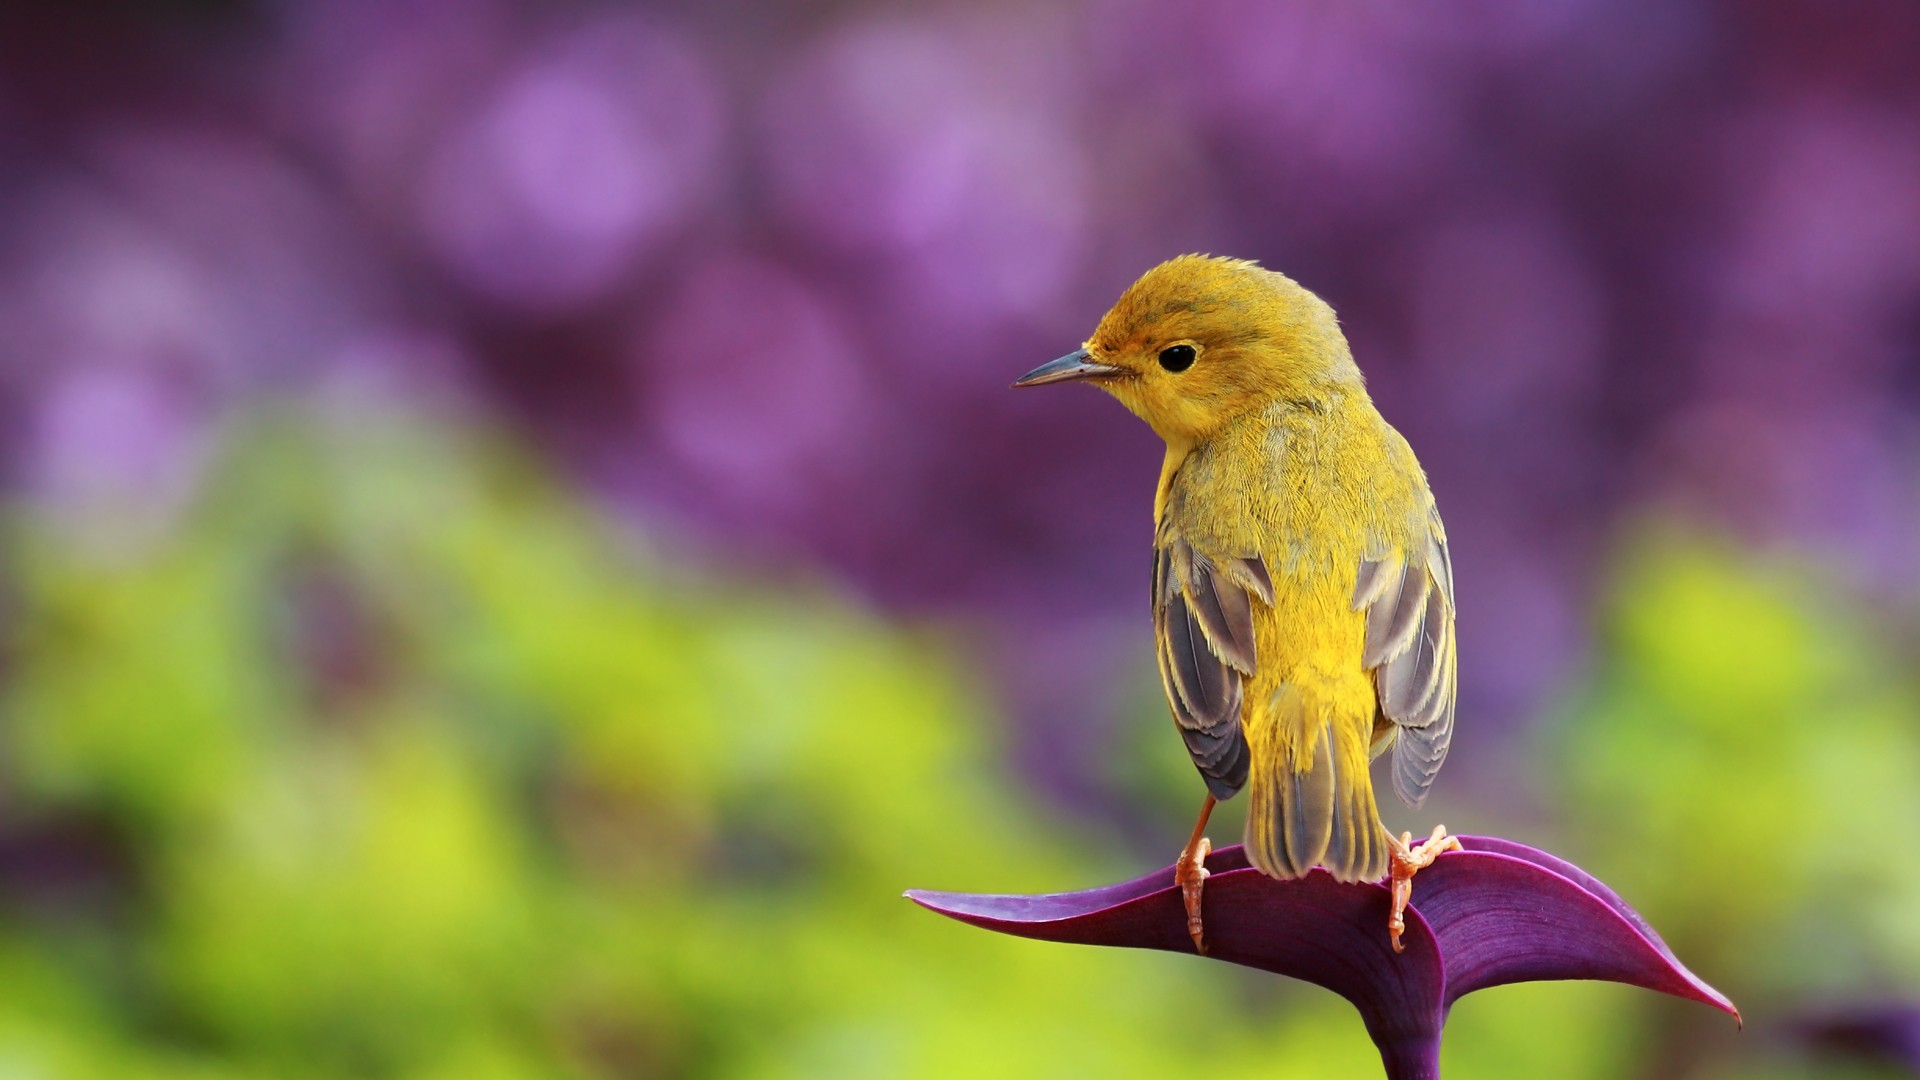 Nature bird Wallpaper